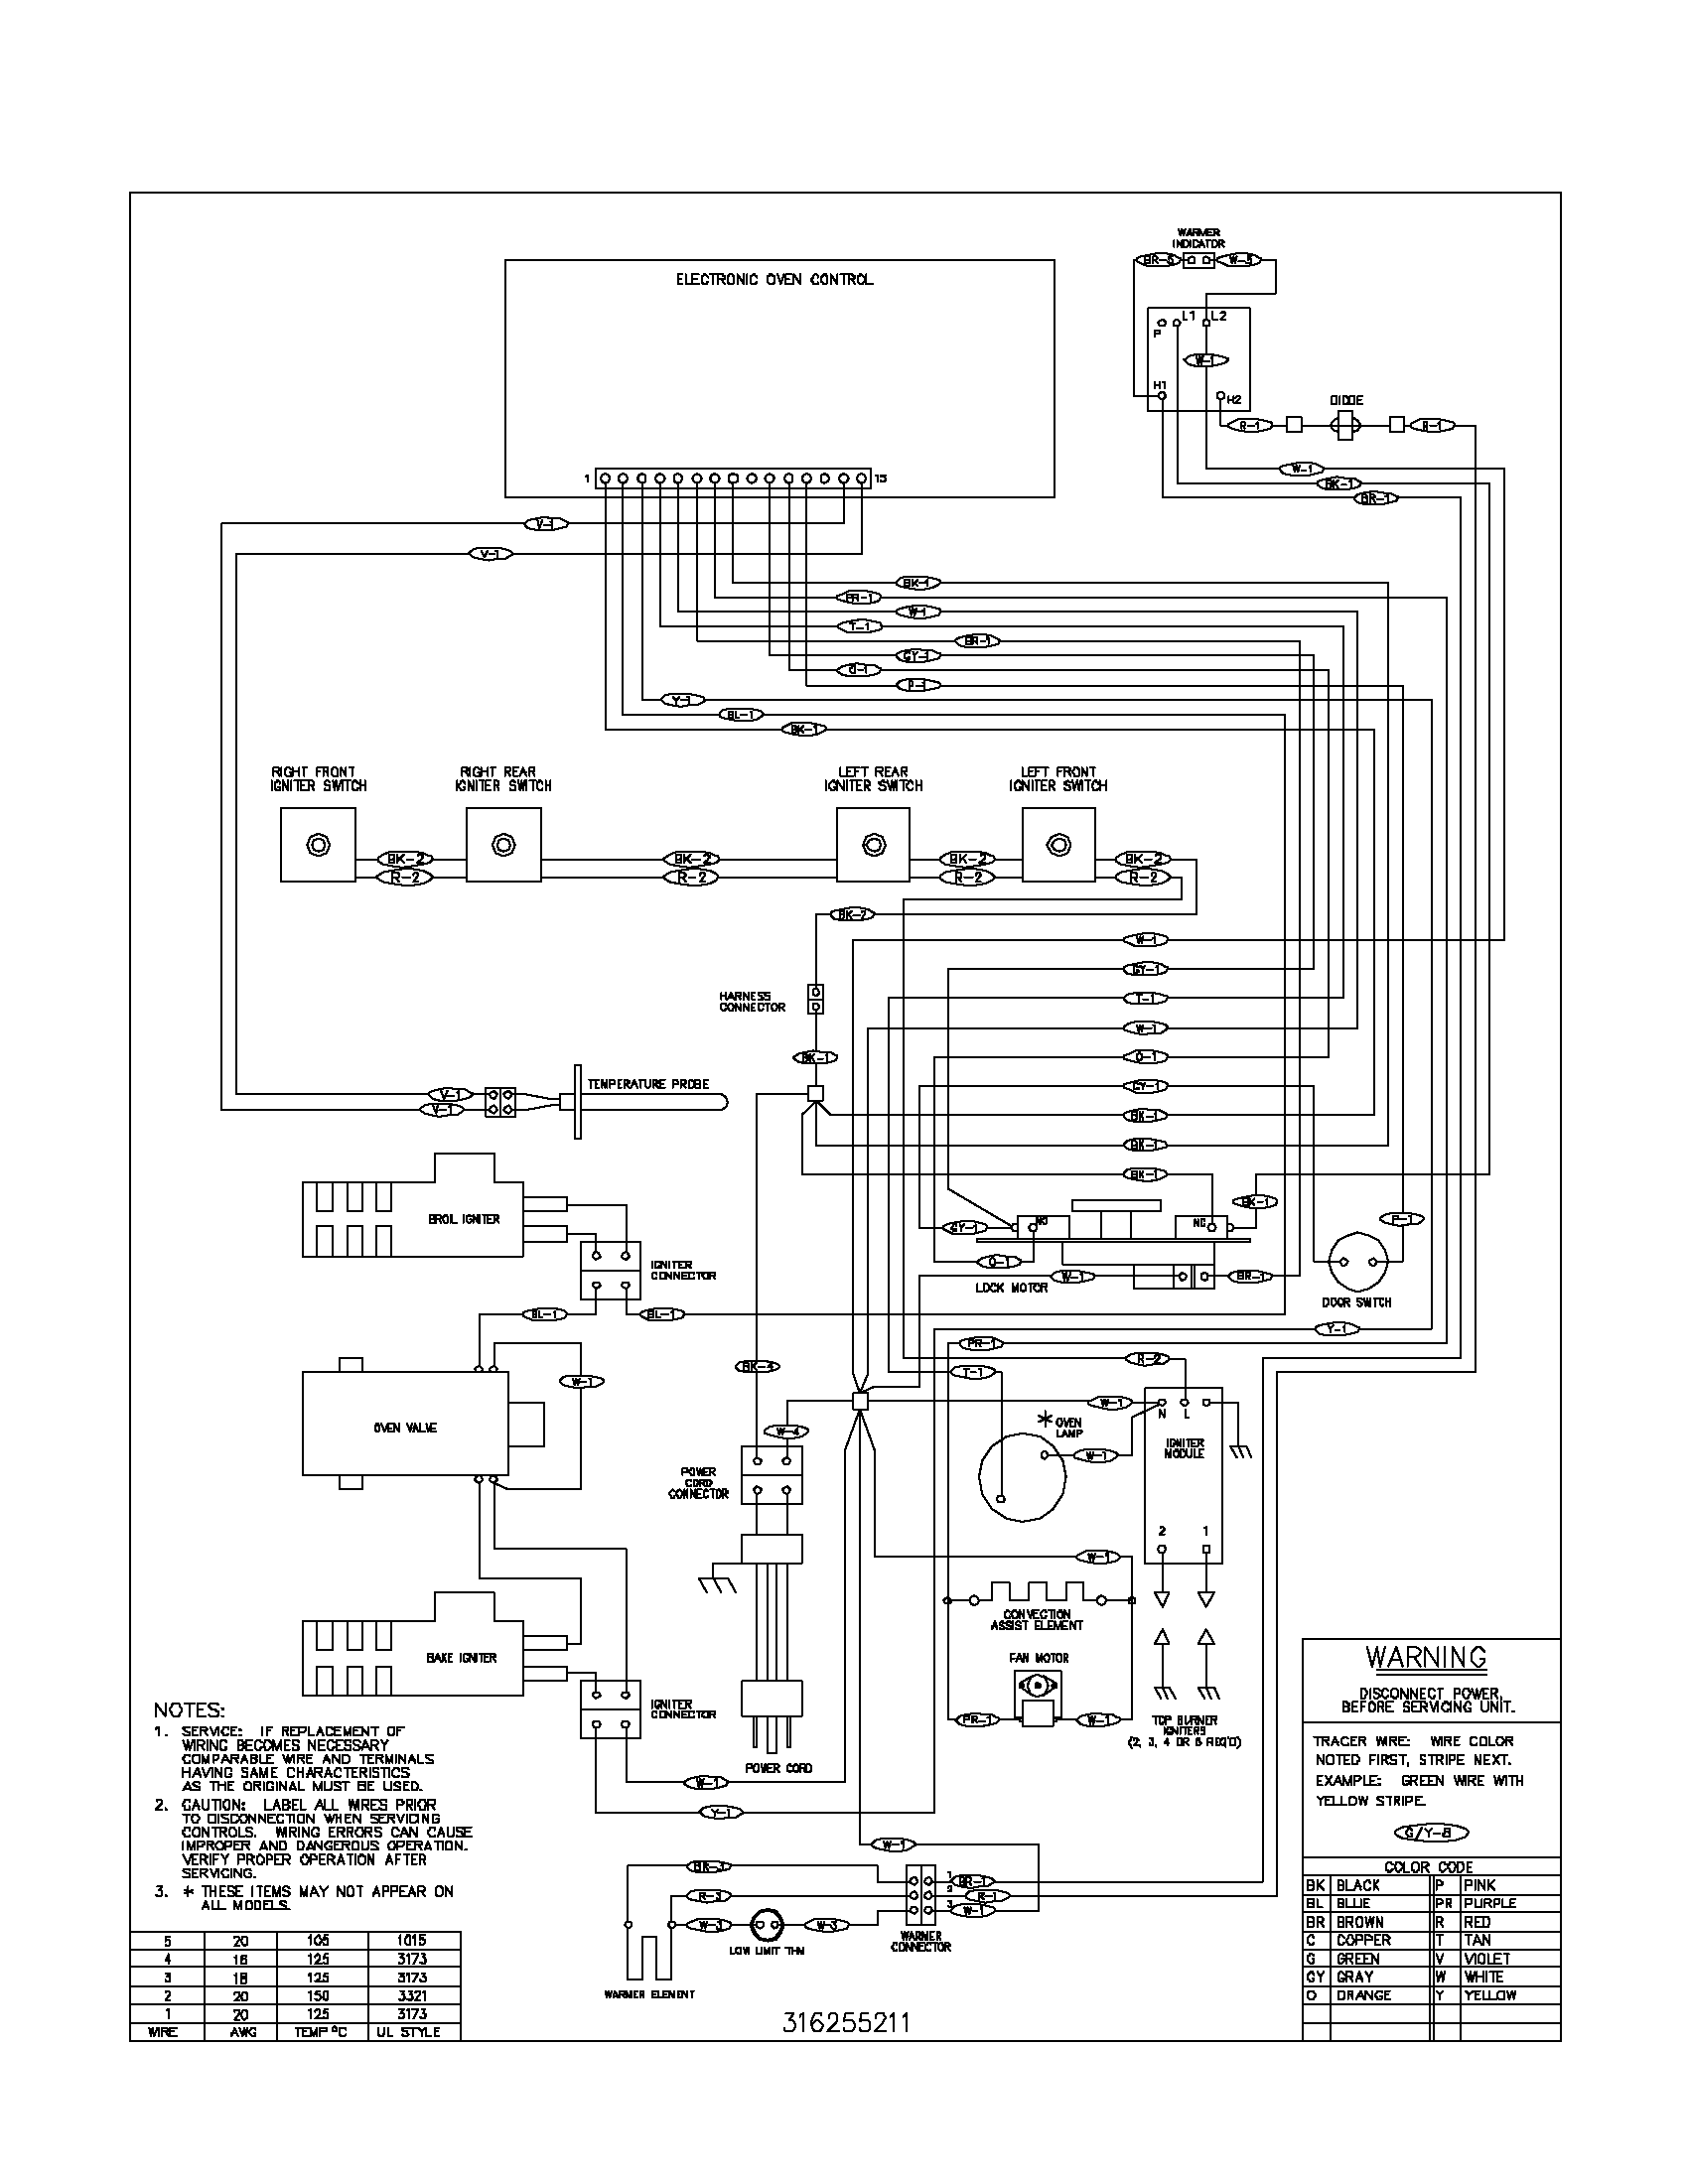 wiring diagram parts?resize\\\\\\\\\\\\\\\\\\\\\\\\\\\\\\\=665%2C861\\\\\\\\\\\\\\\\\\\\\\\\\\\\\\\&ssl\\\\\\\\\\\\\\\\\\\\\\\\\\\\\\\=1 kenmore refrigerator wire diagram kenmore schematic diagram kenmore side by side refrigerator wiring diagram at nearapp.co